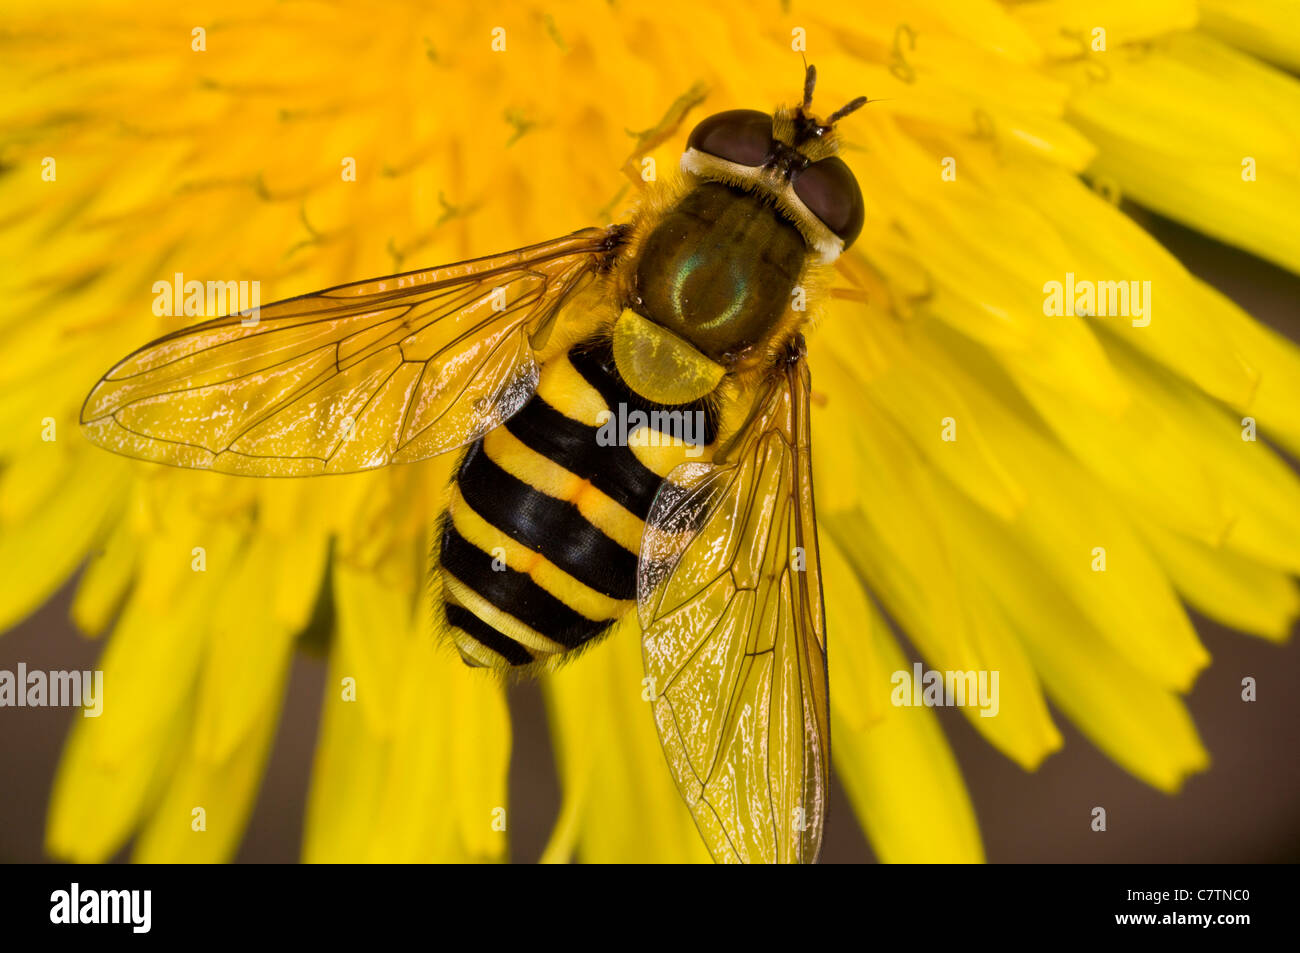 A common hoverfly, Syrphus ribesii on dandelion flower; Dorset garden. - Stock Image